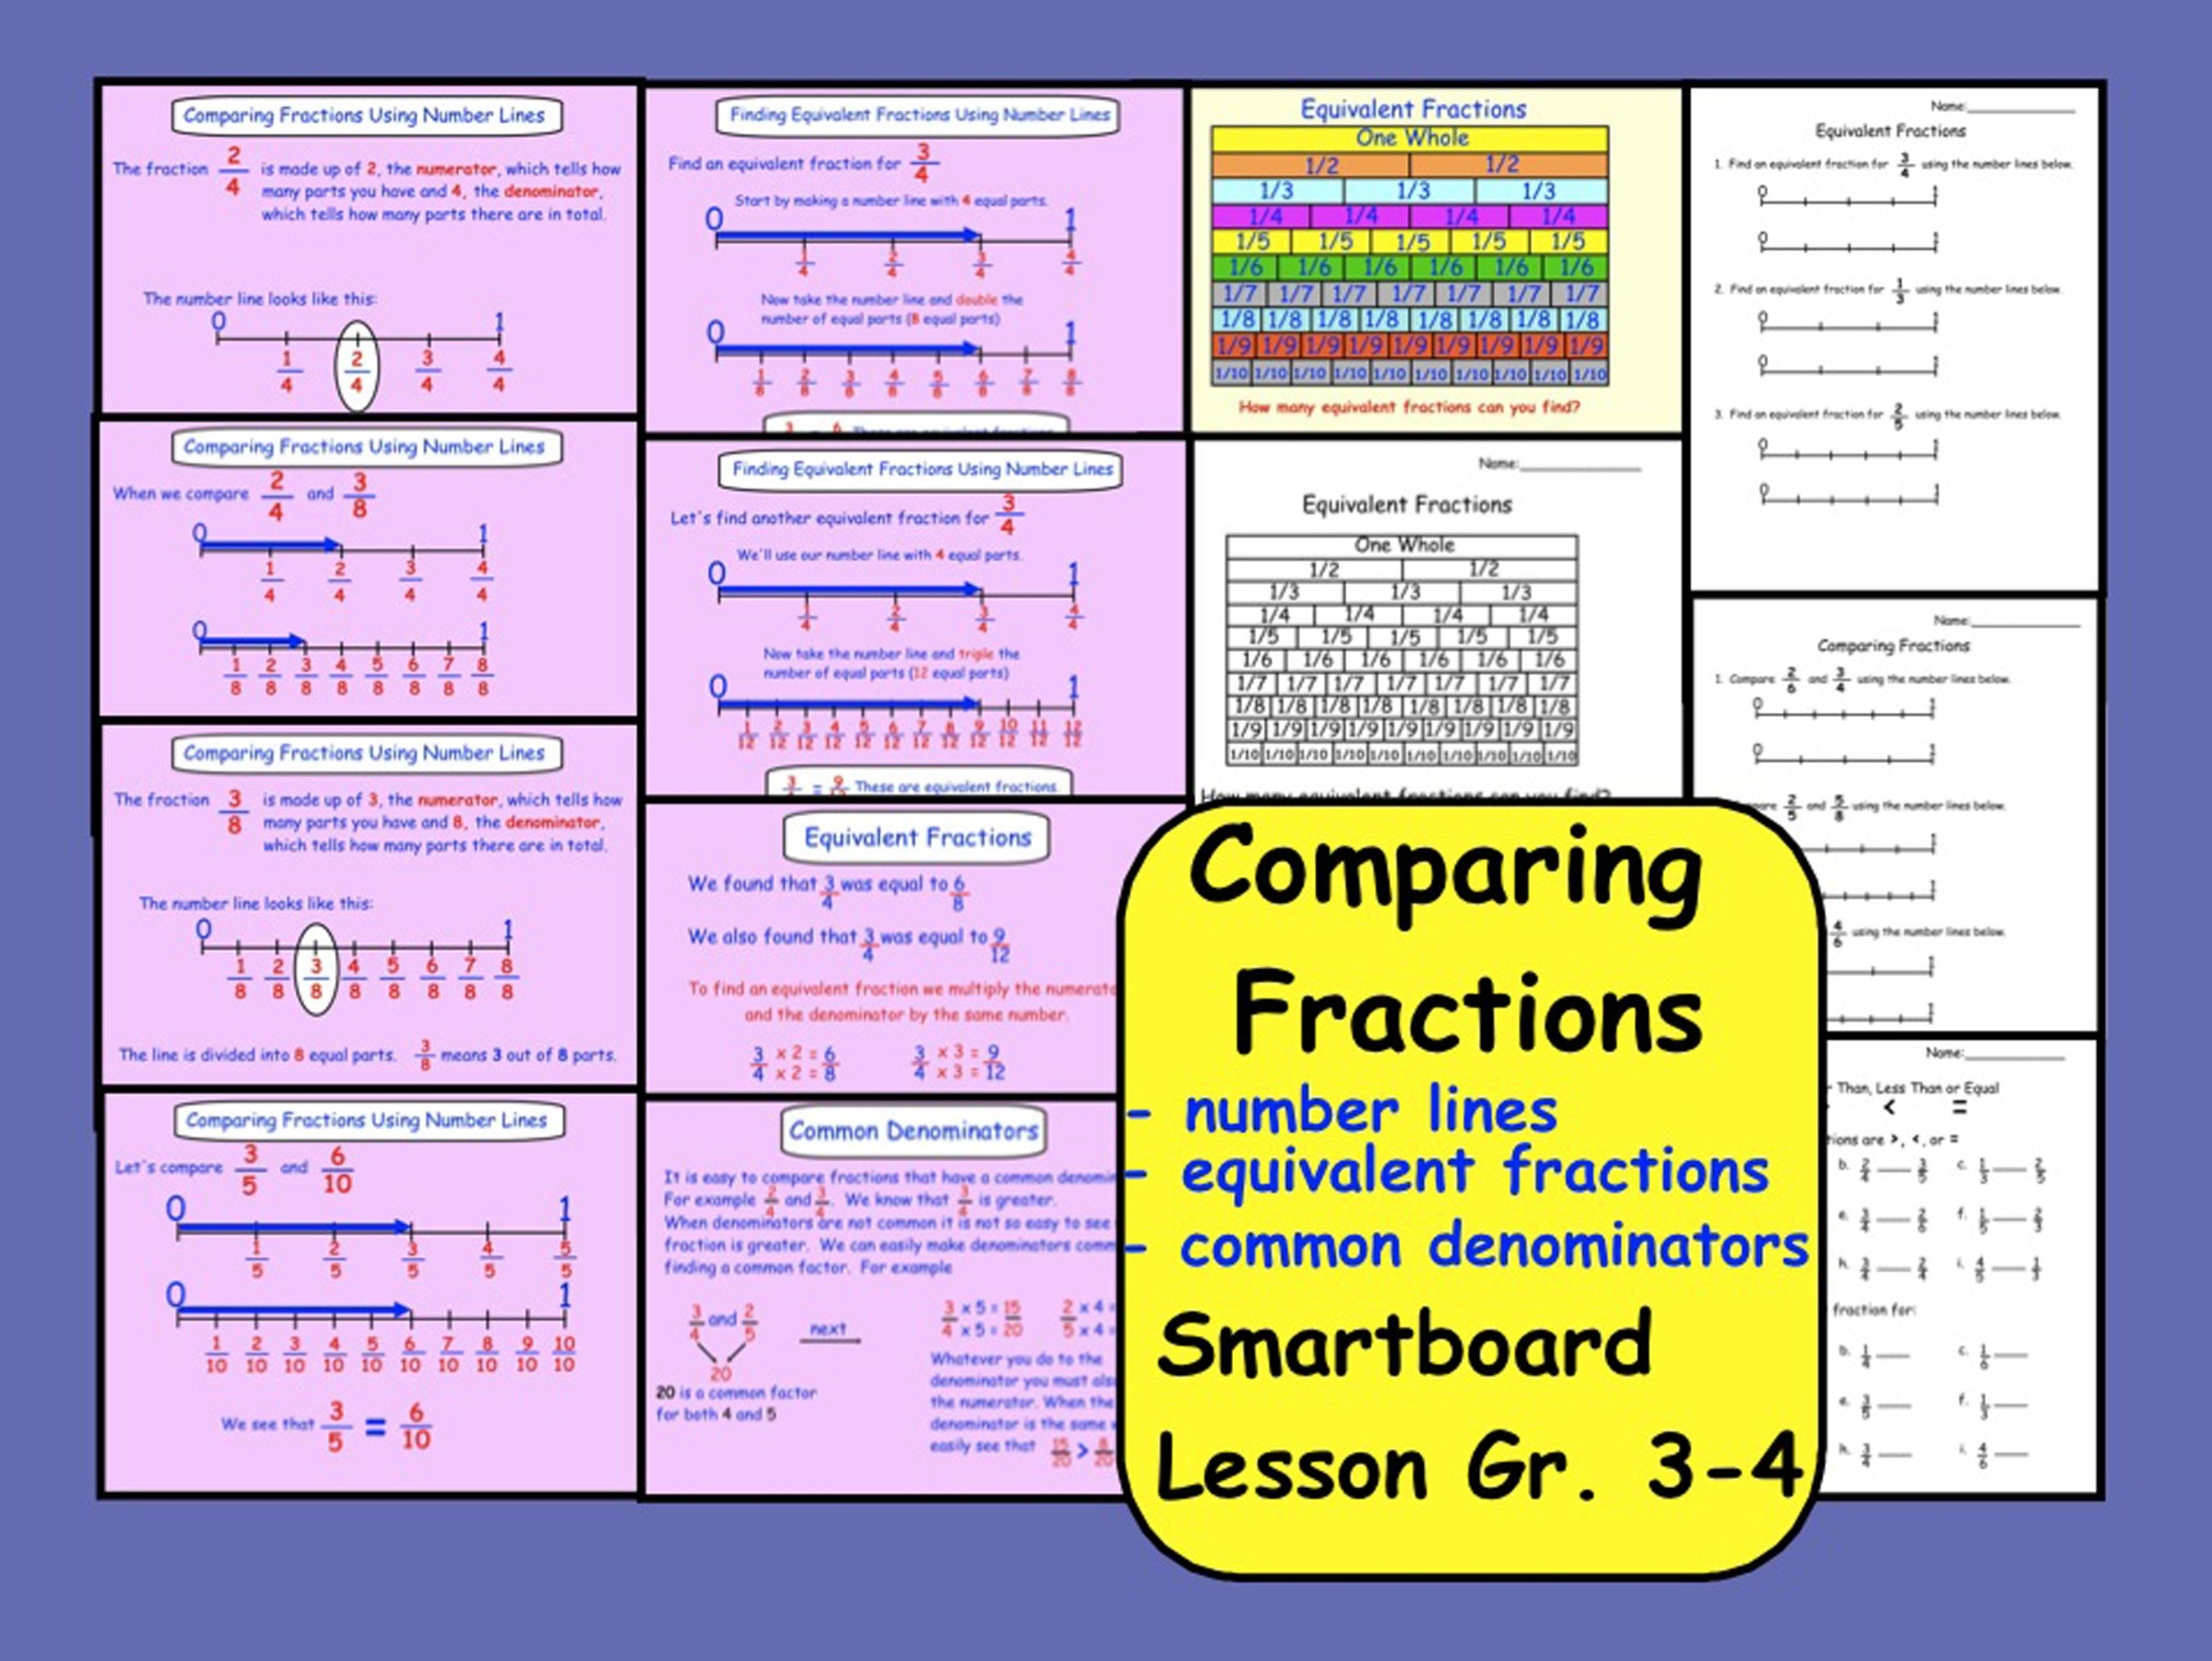 Comparing Fractions Using Number Lines Smartboard Lesson